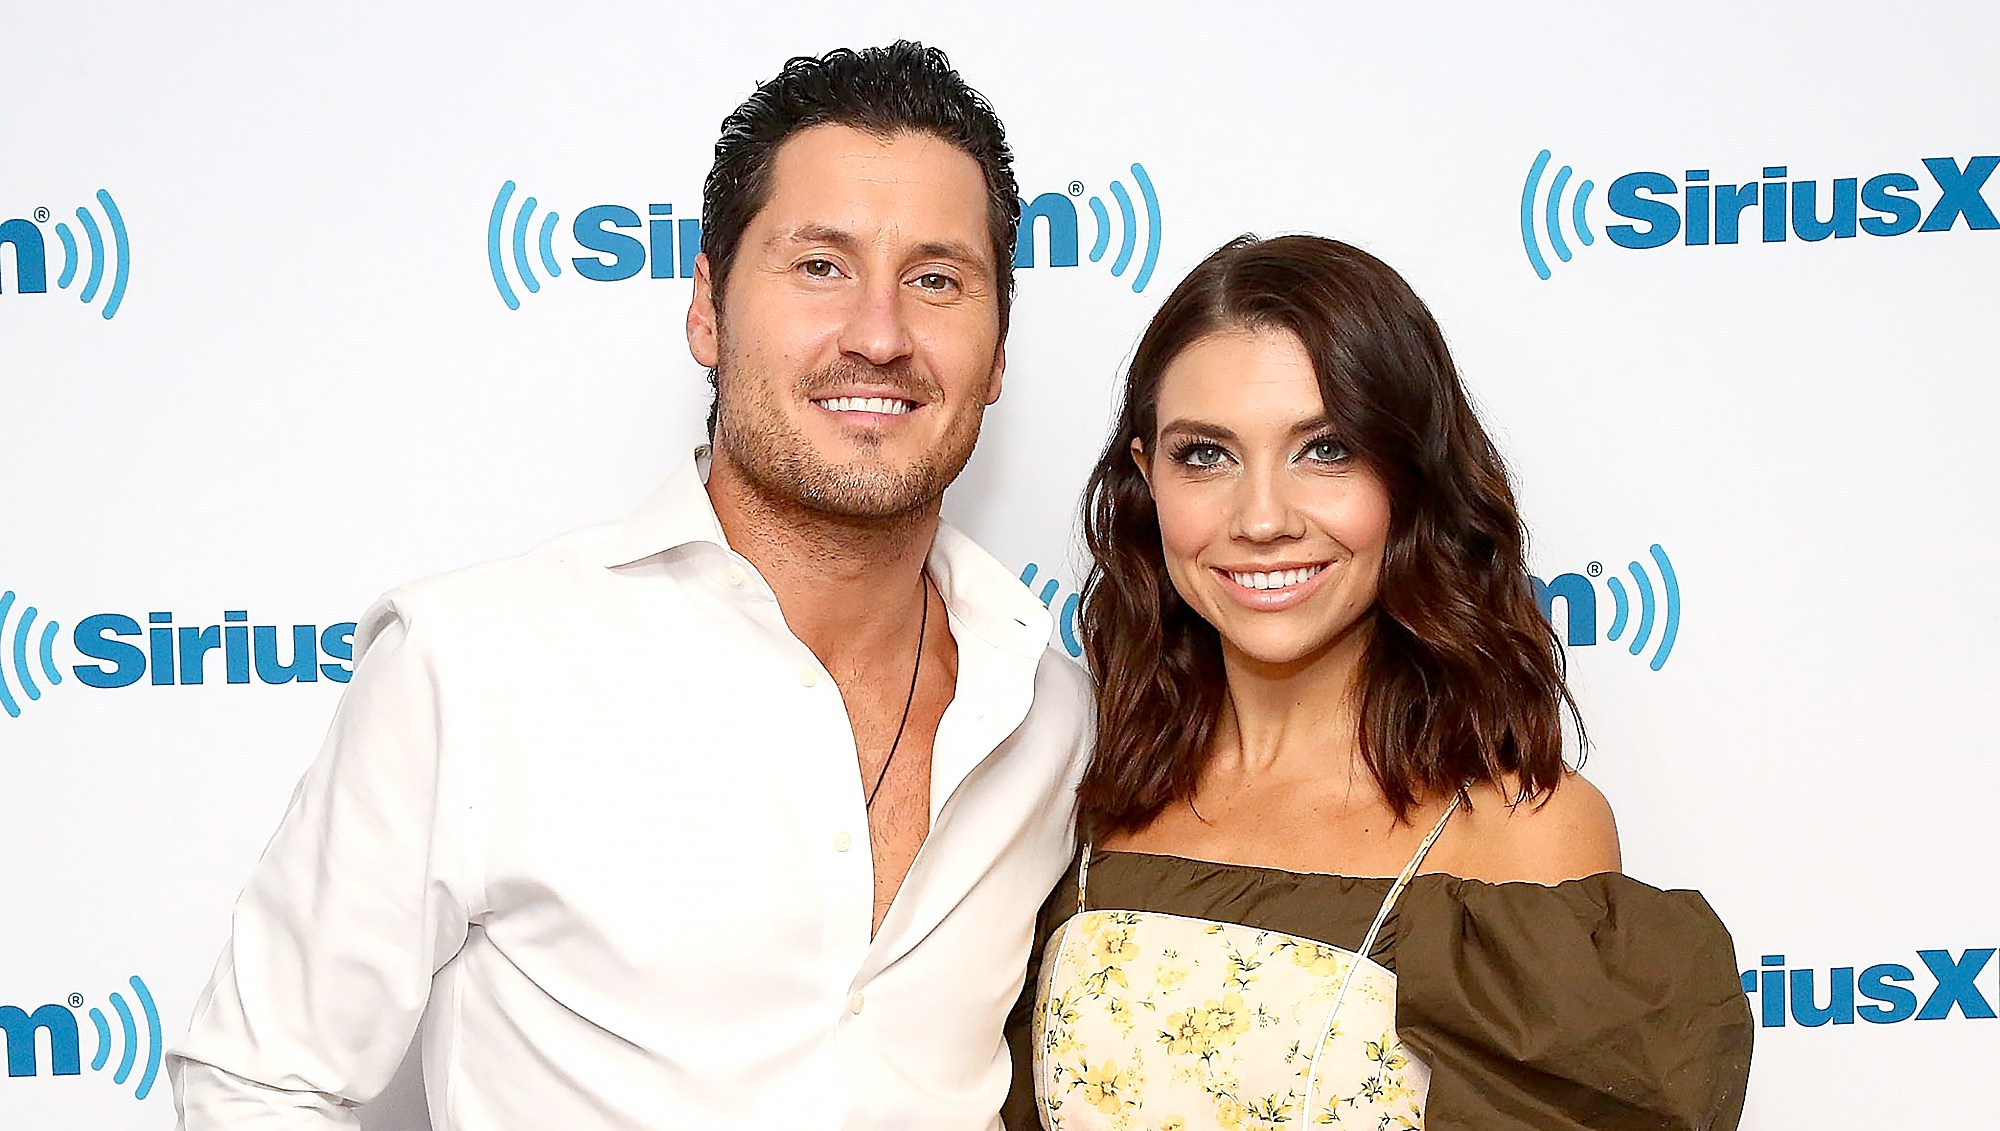 Dancing With the Stars' Val Chmerkovskiy Gushes Over 'Gorgeous Wife' Jenna Johnson on Their Honeymoon